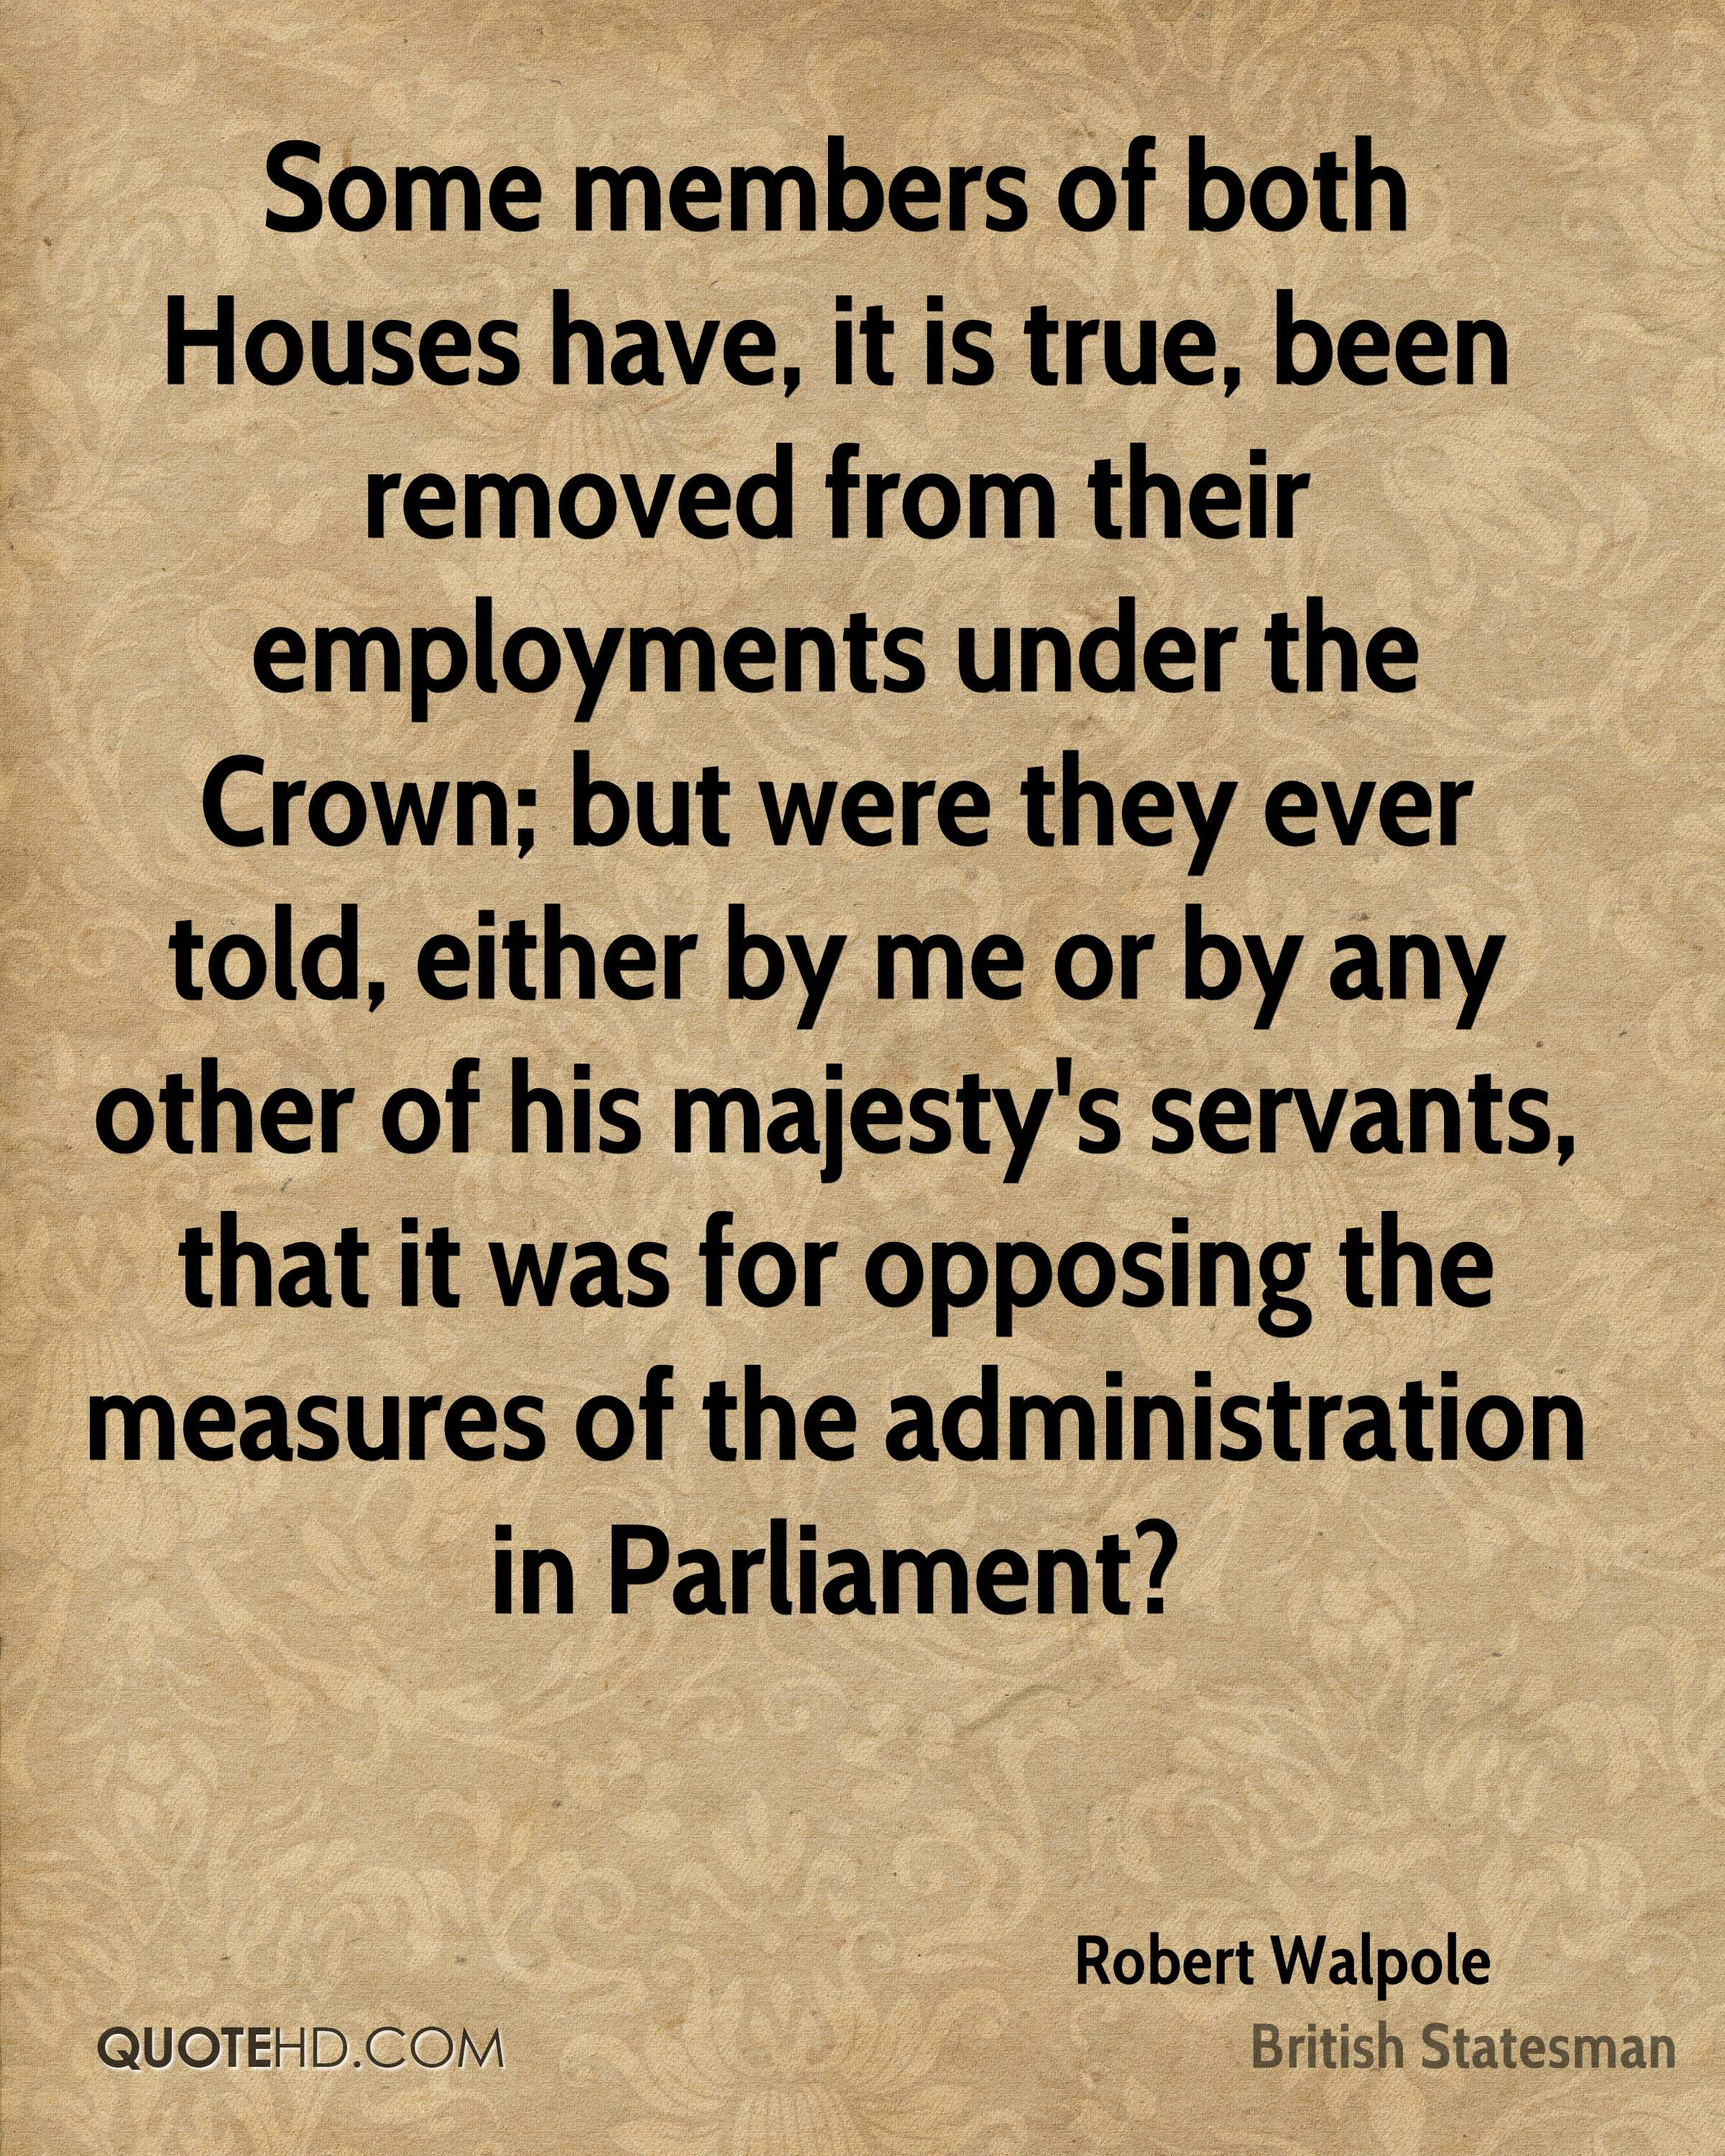 Some members of both Houses have, it is true, been removed from their employments under the Crown; but were they ever told, either by me or by any other of his majesty's servants, that it was for opposing the measures of the administration in Parliament?